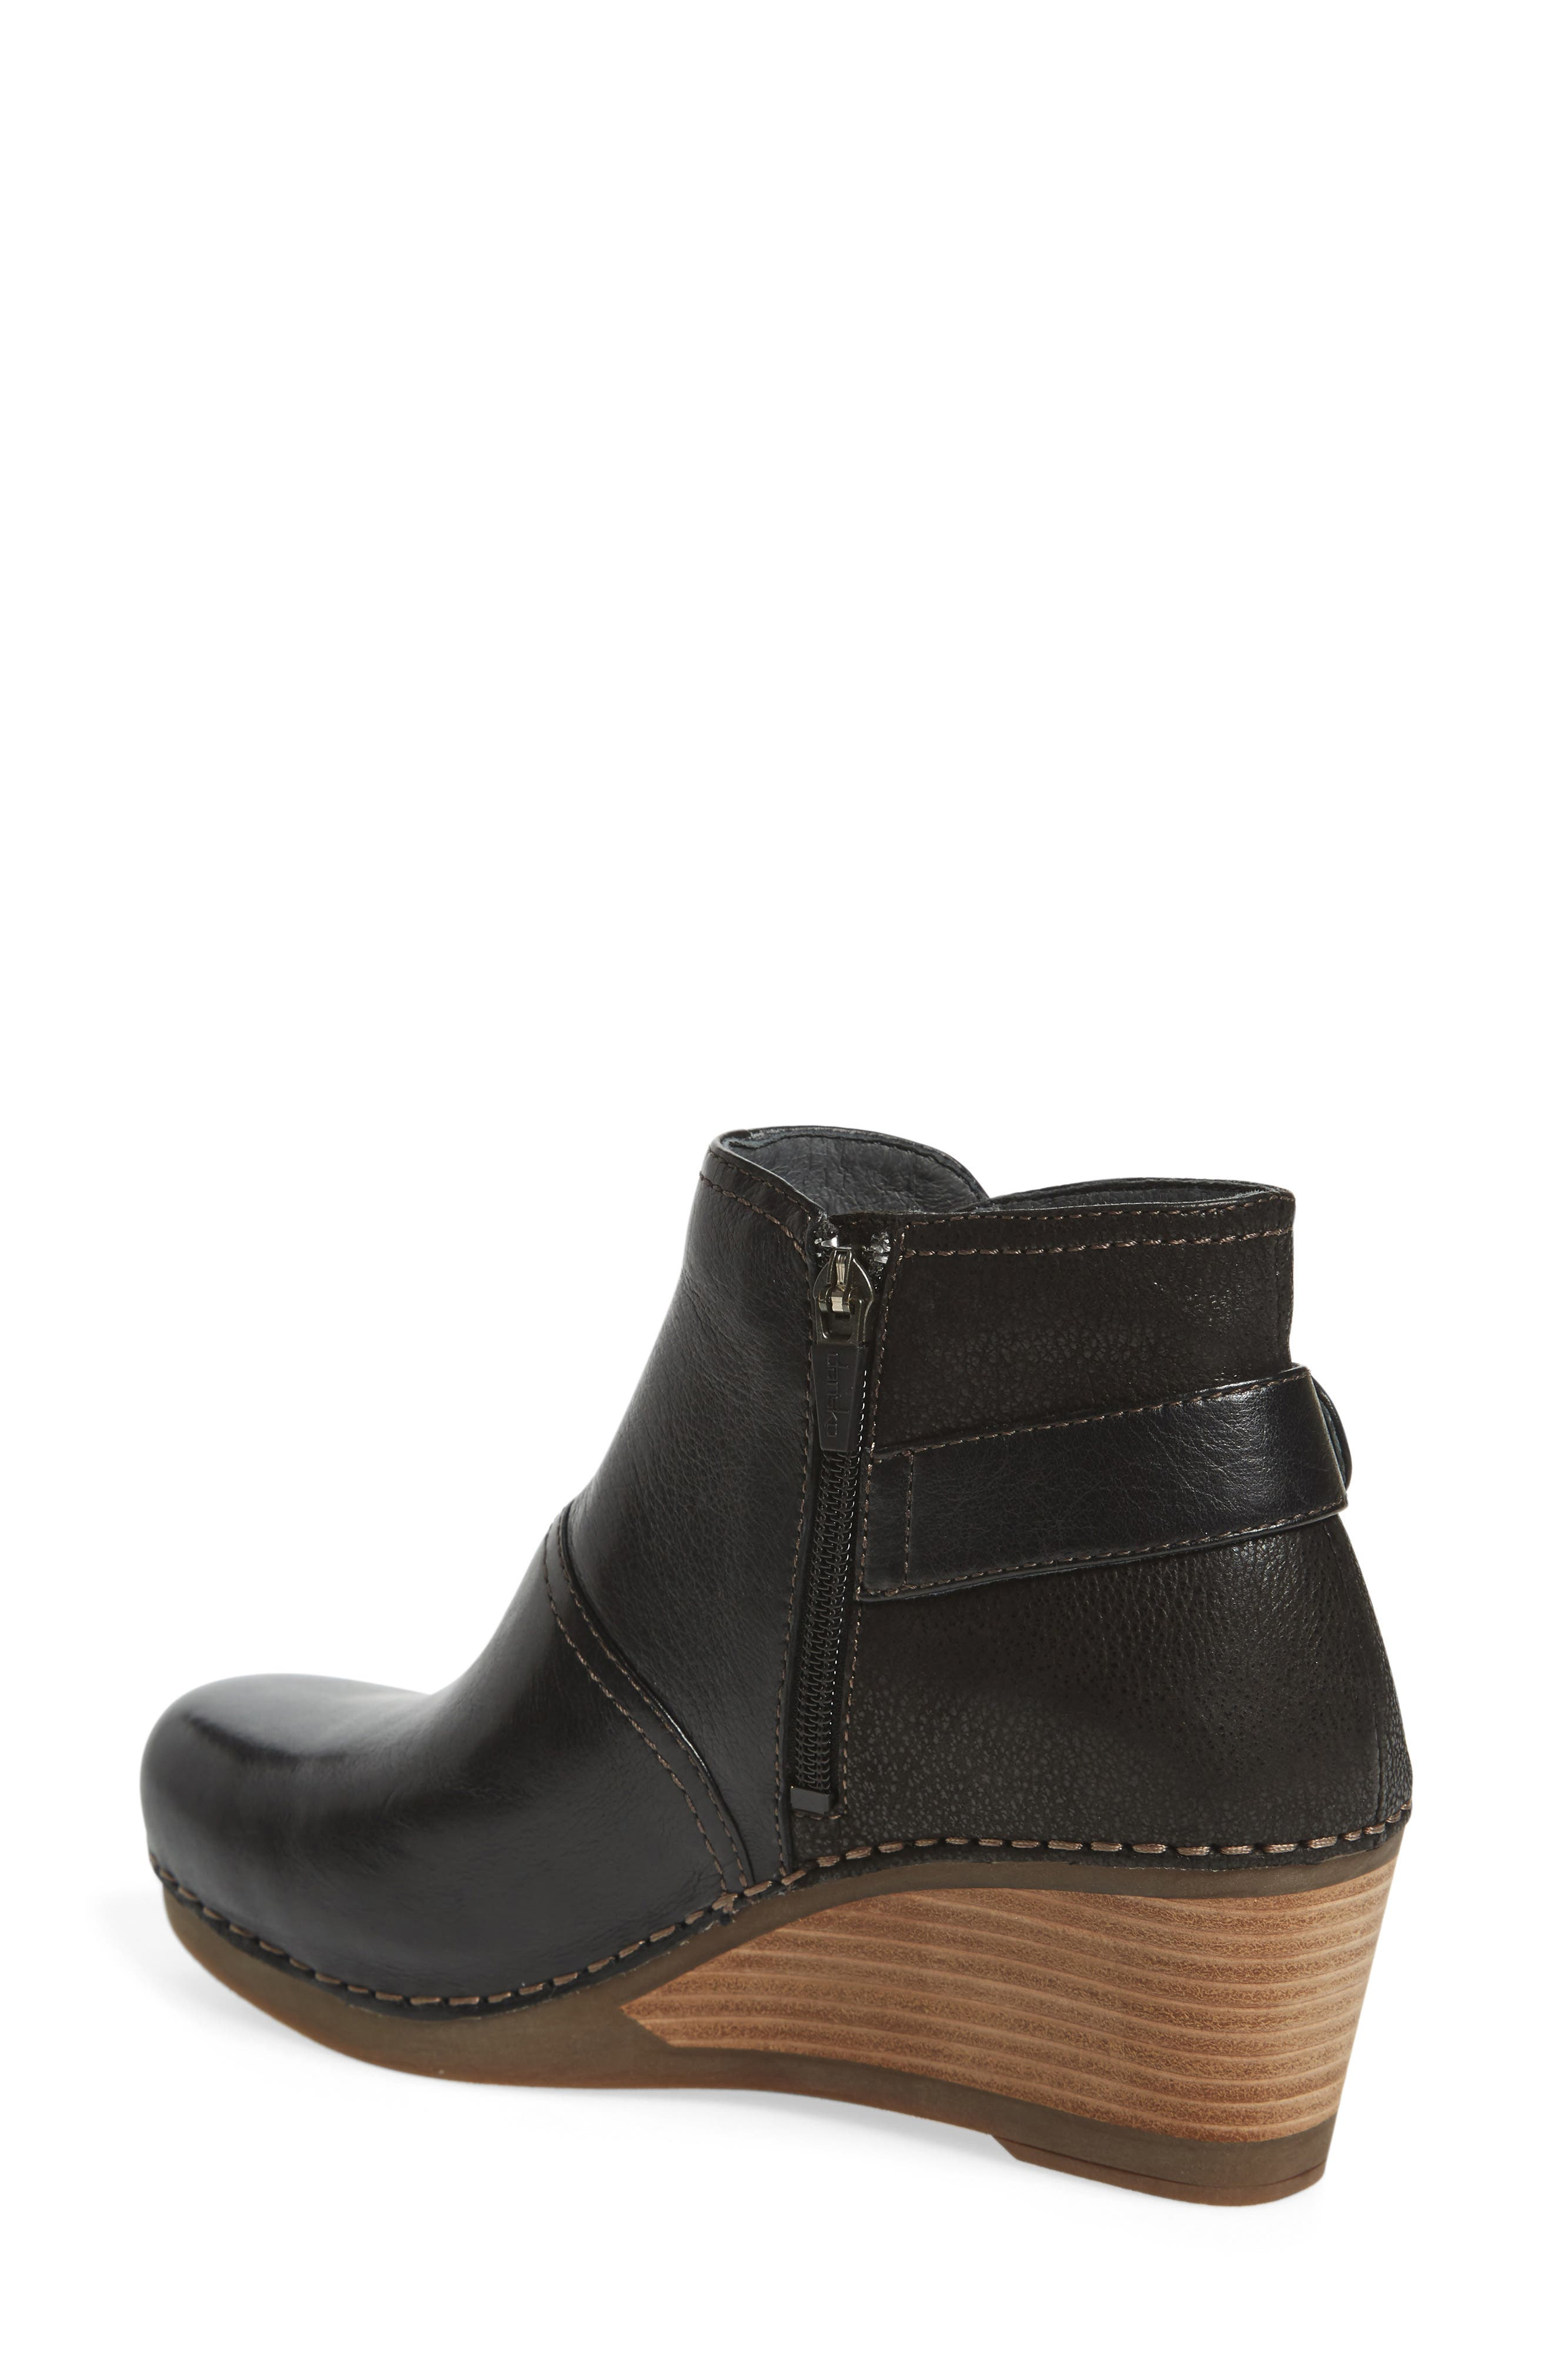 'Shirley' Wedge Bootie,                             Alternate thumbnail 7, color,